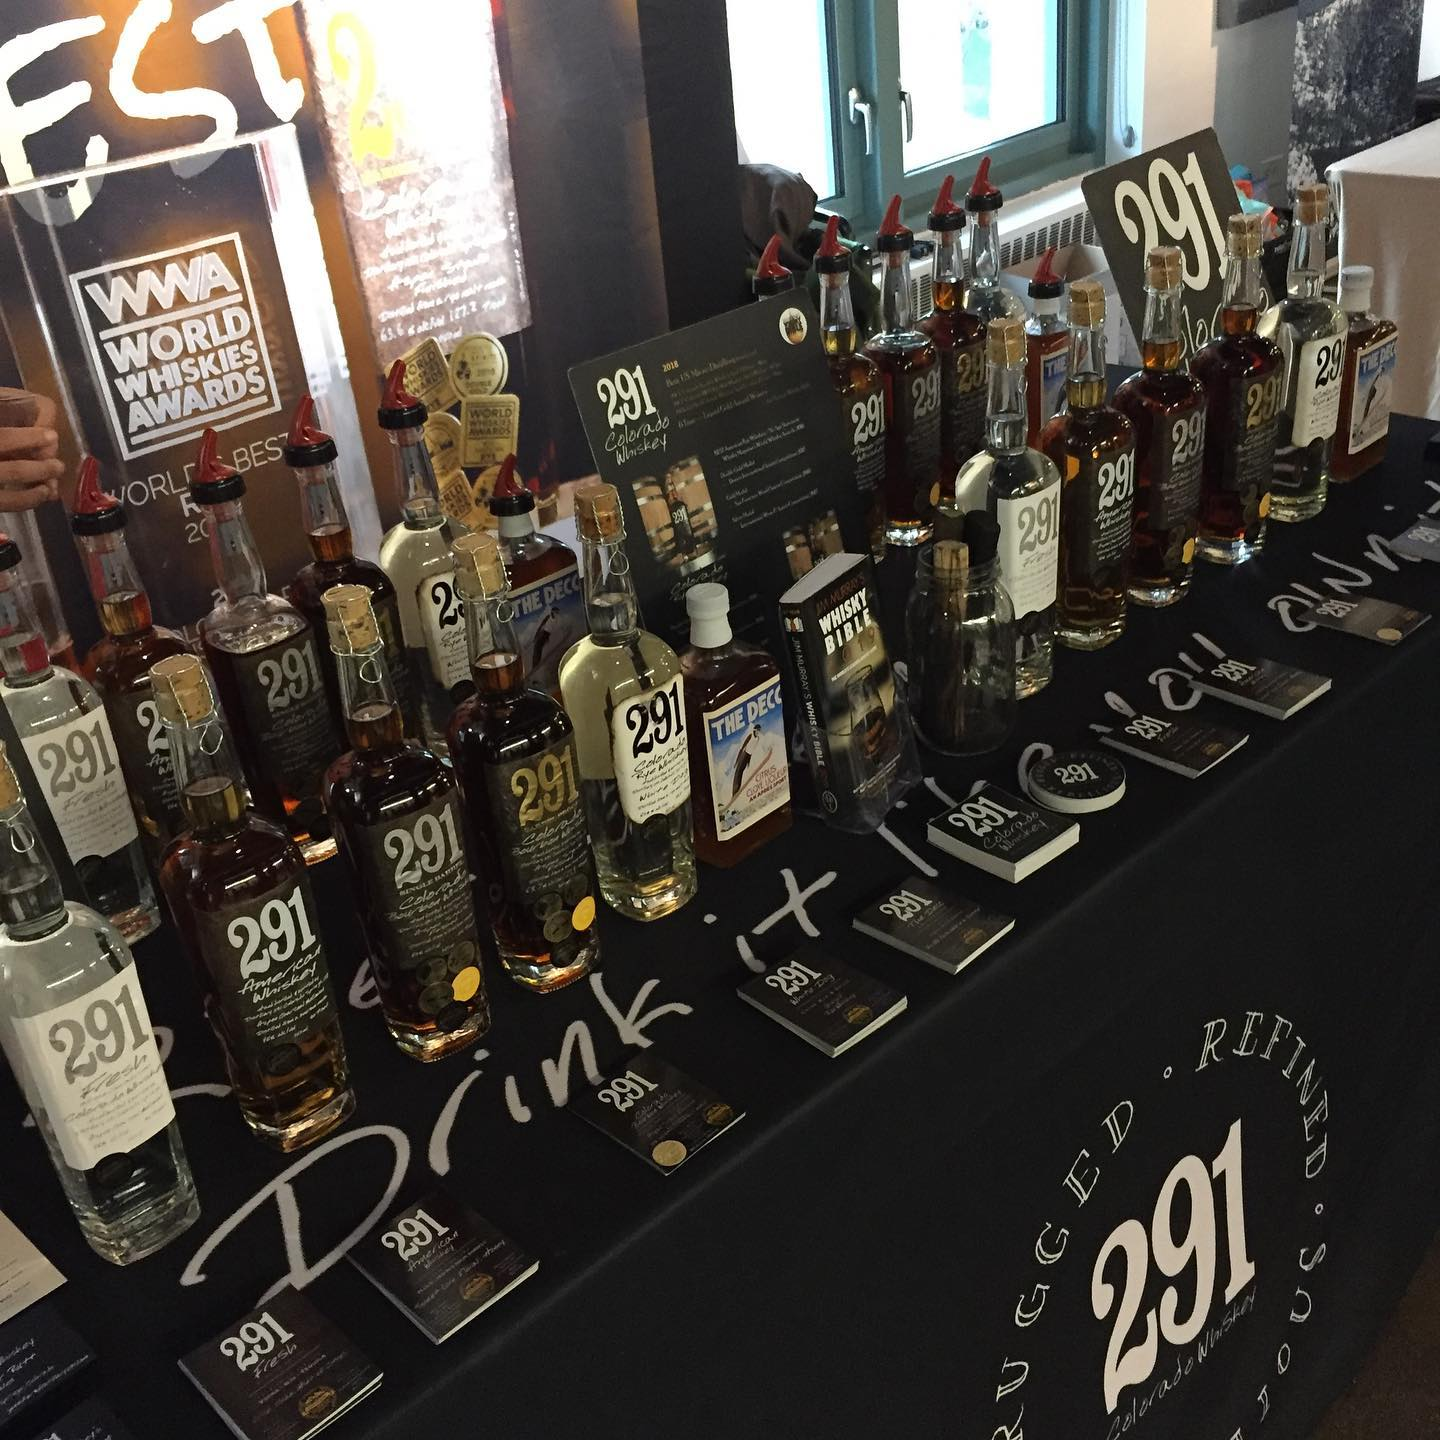 co spirits table